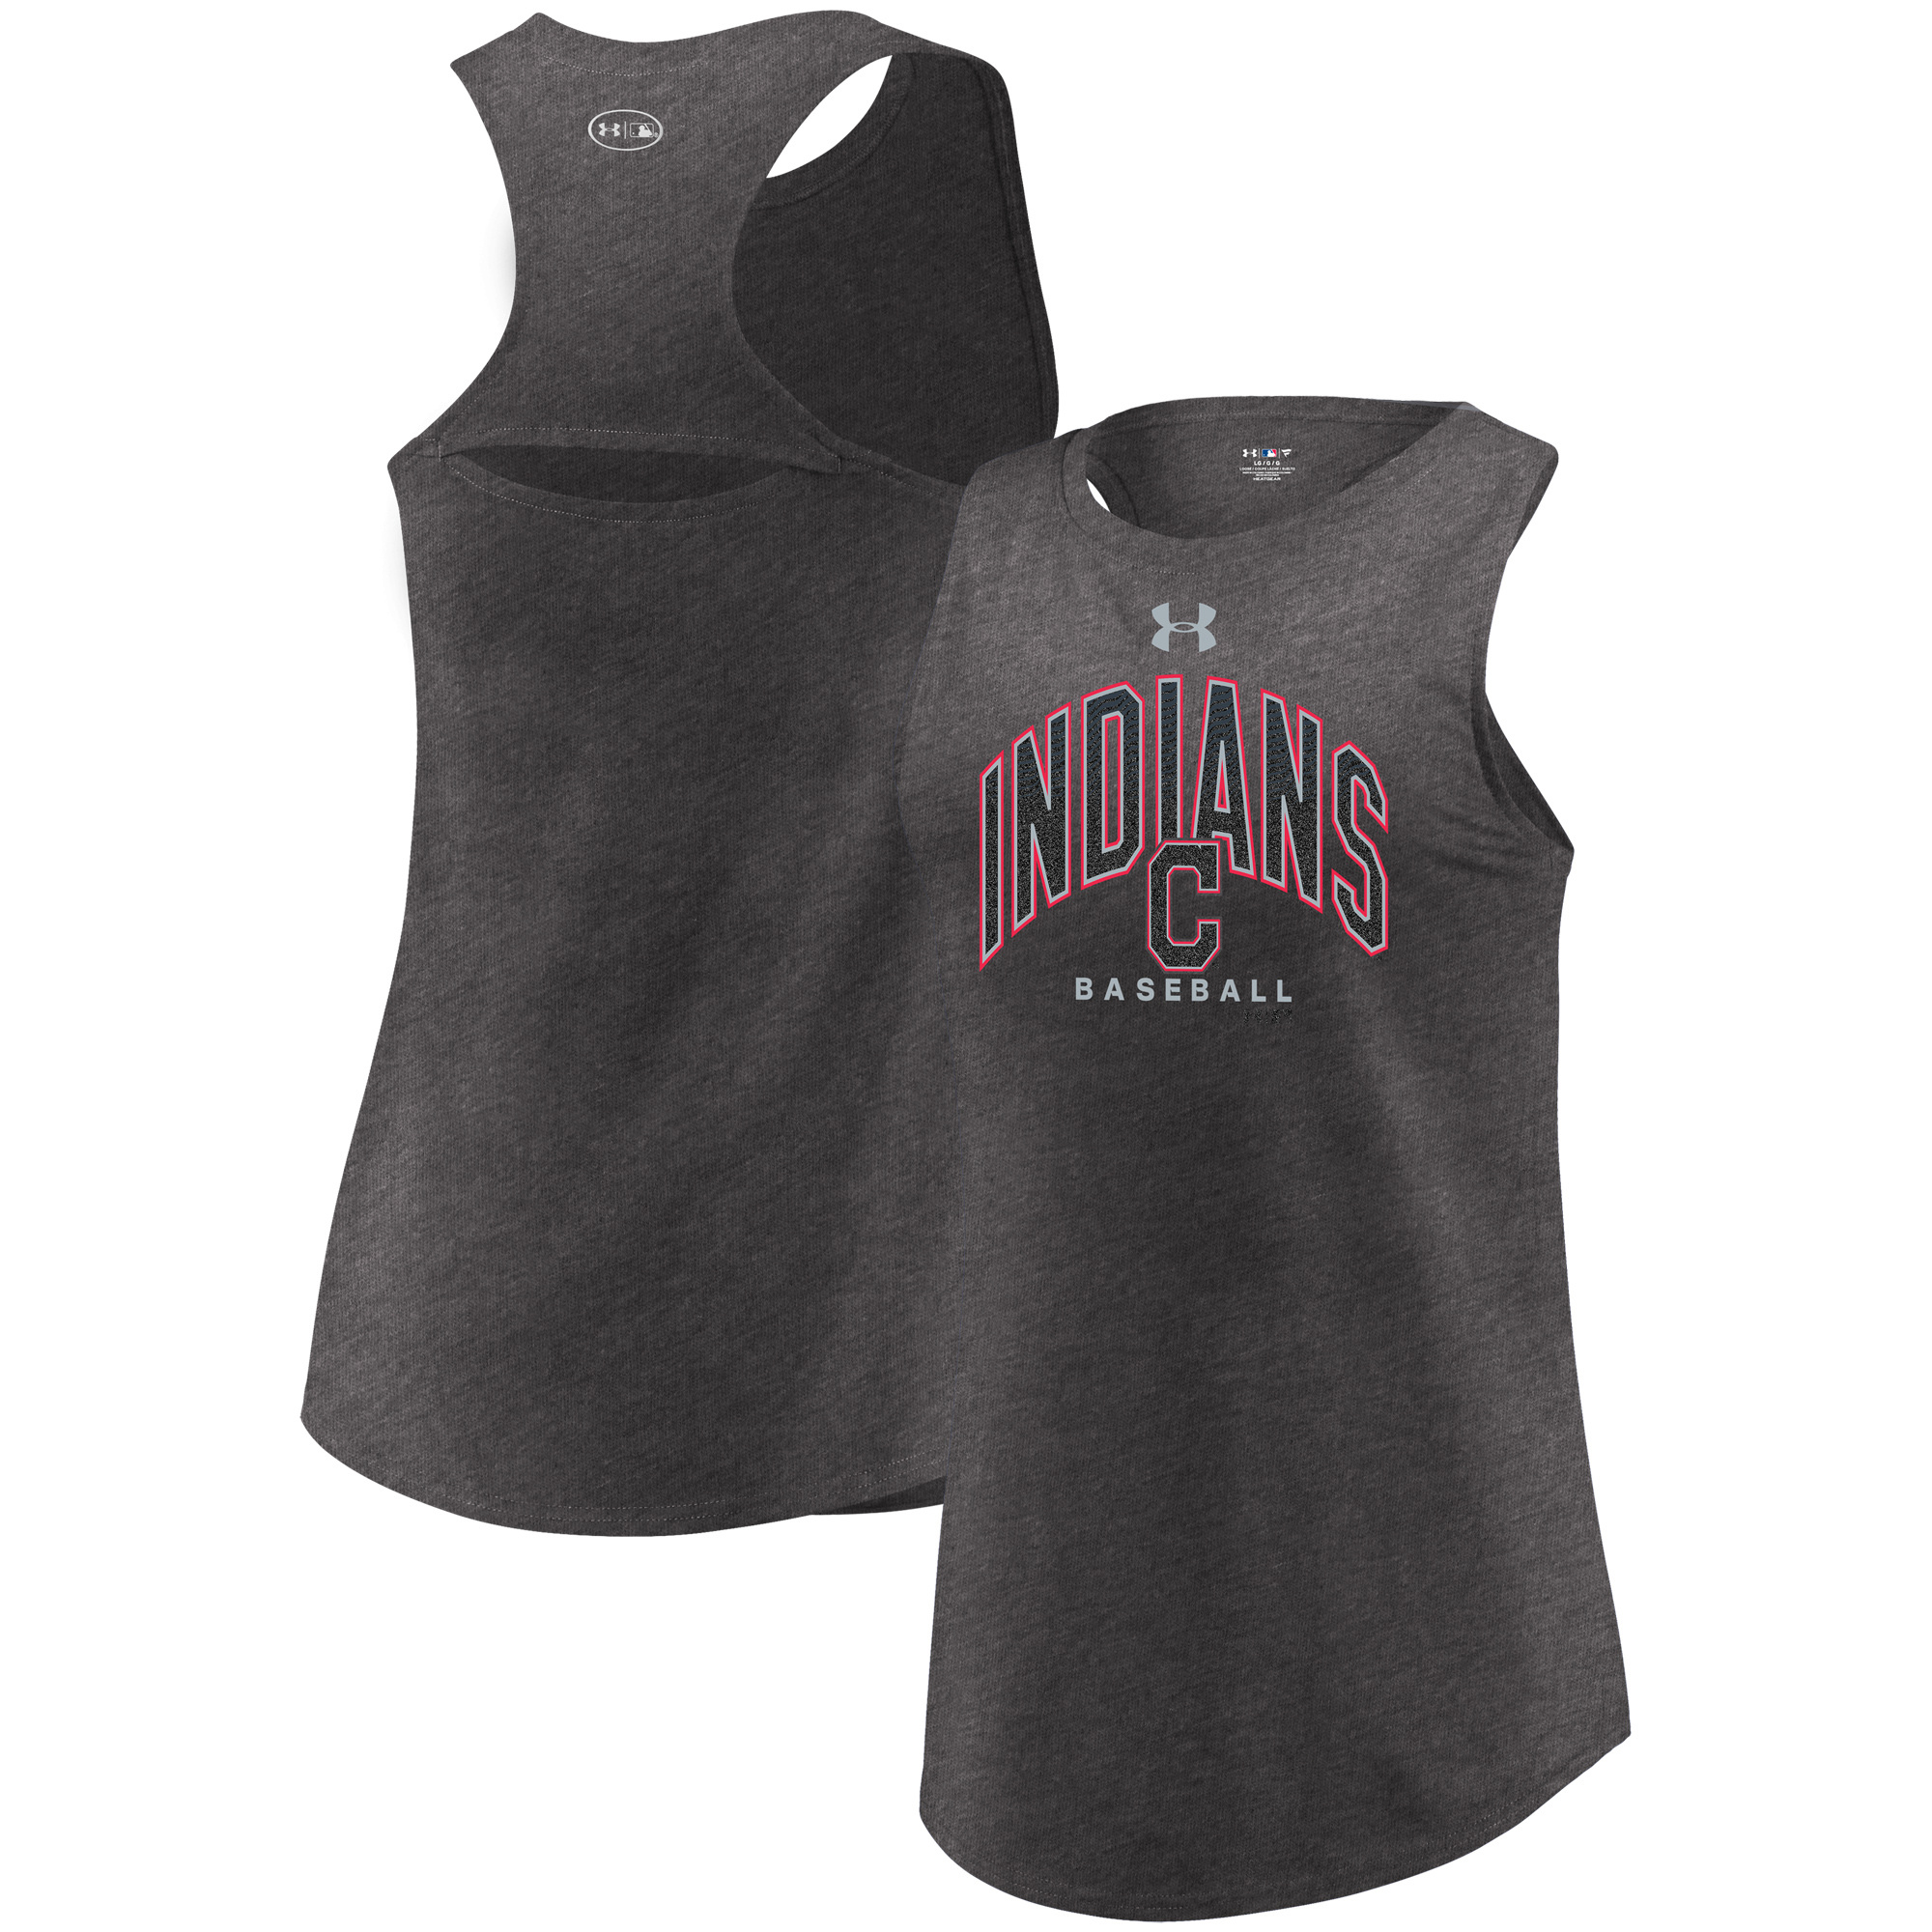 Cleveland Indians Under Armour Women's Passion Reflective Arch Tri-Blend Tank Top - Heathered Charcoal